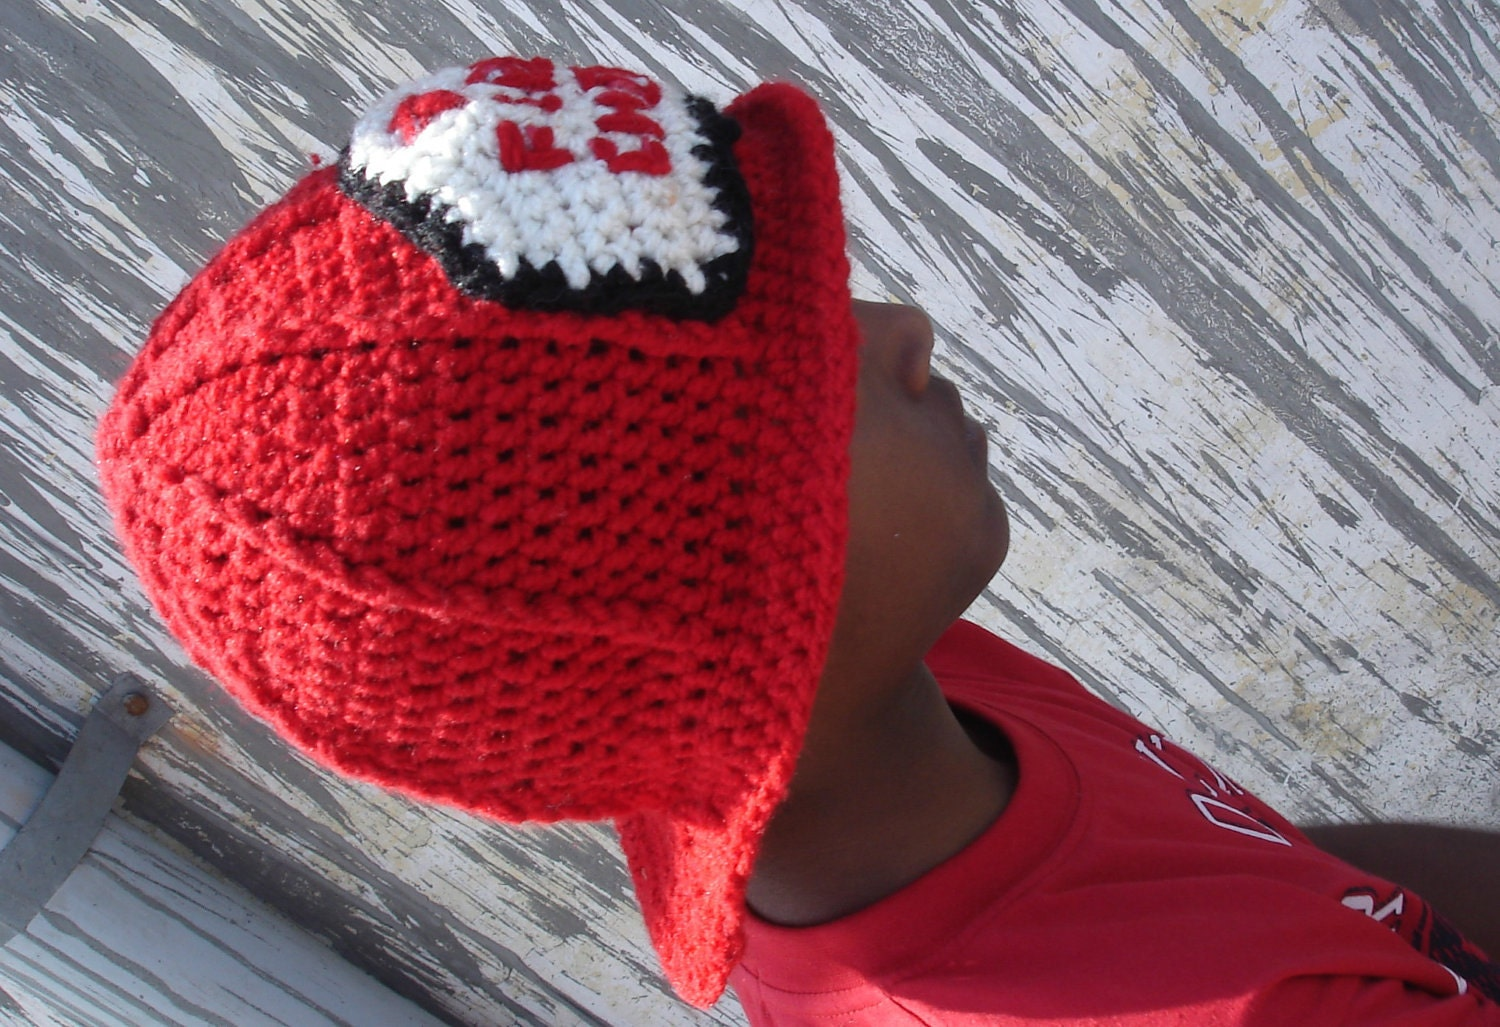 Crochet Pattern For Baby Fireman Hat : Crochet Fireman Outfit Pattern images